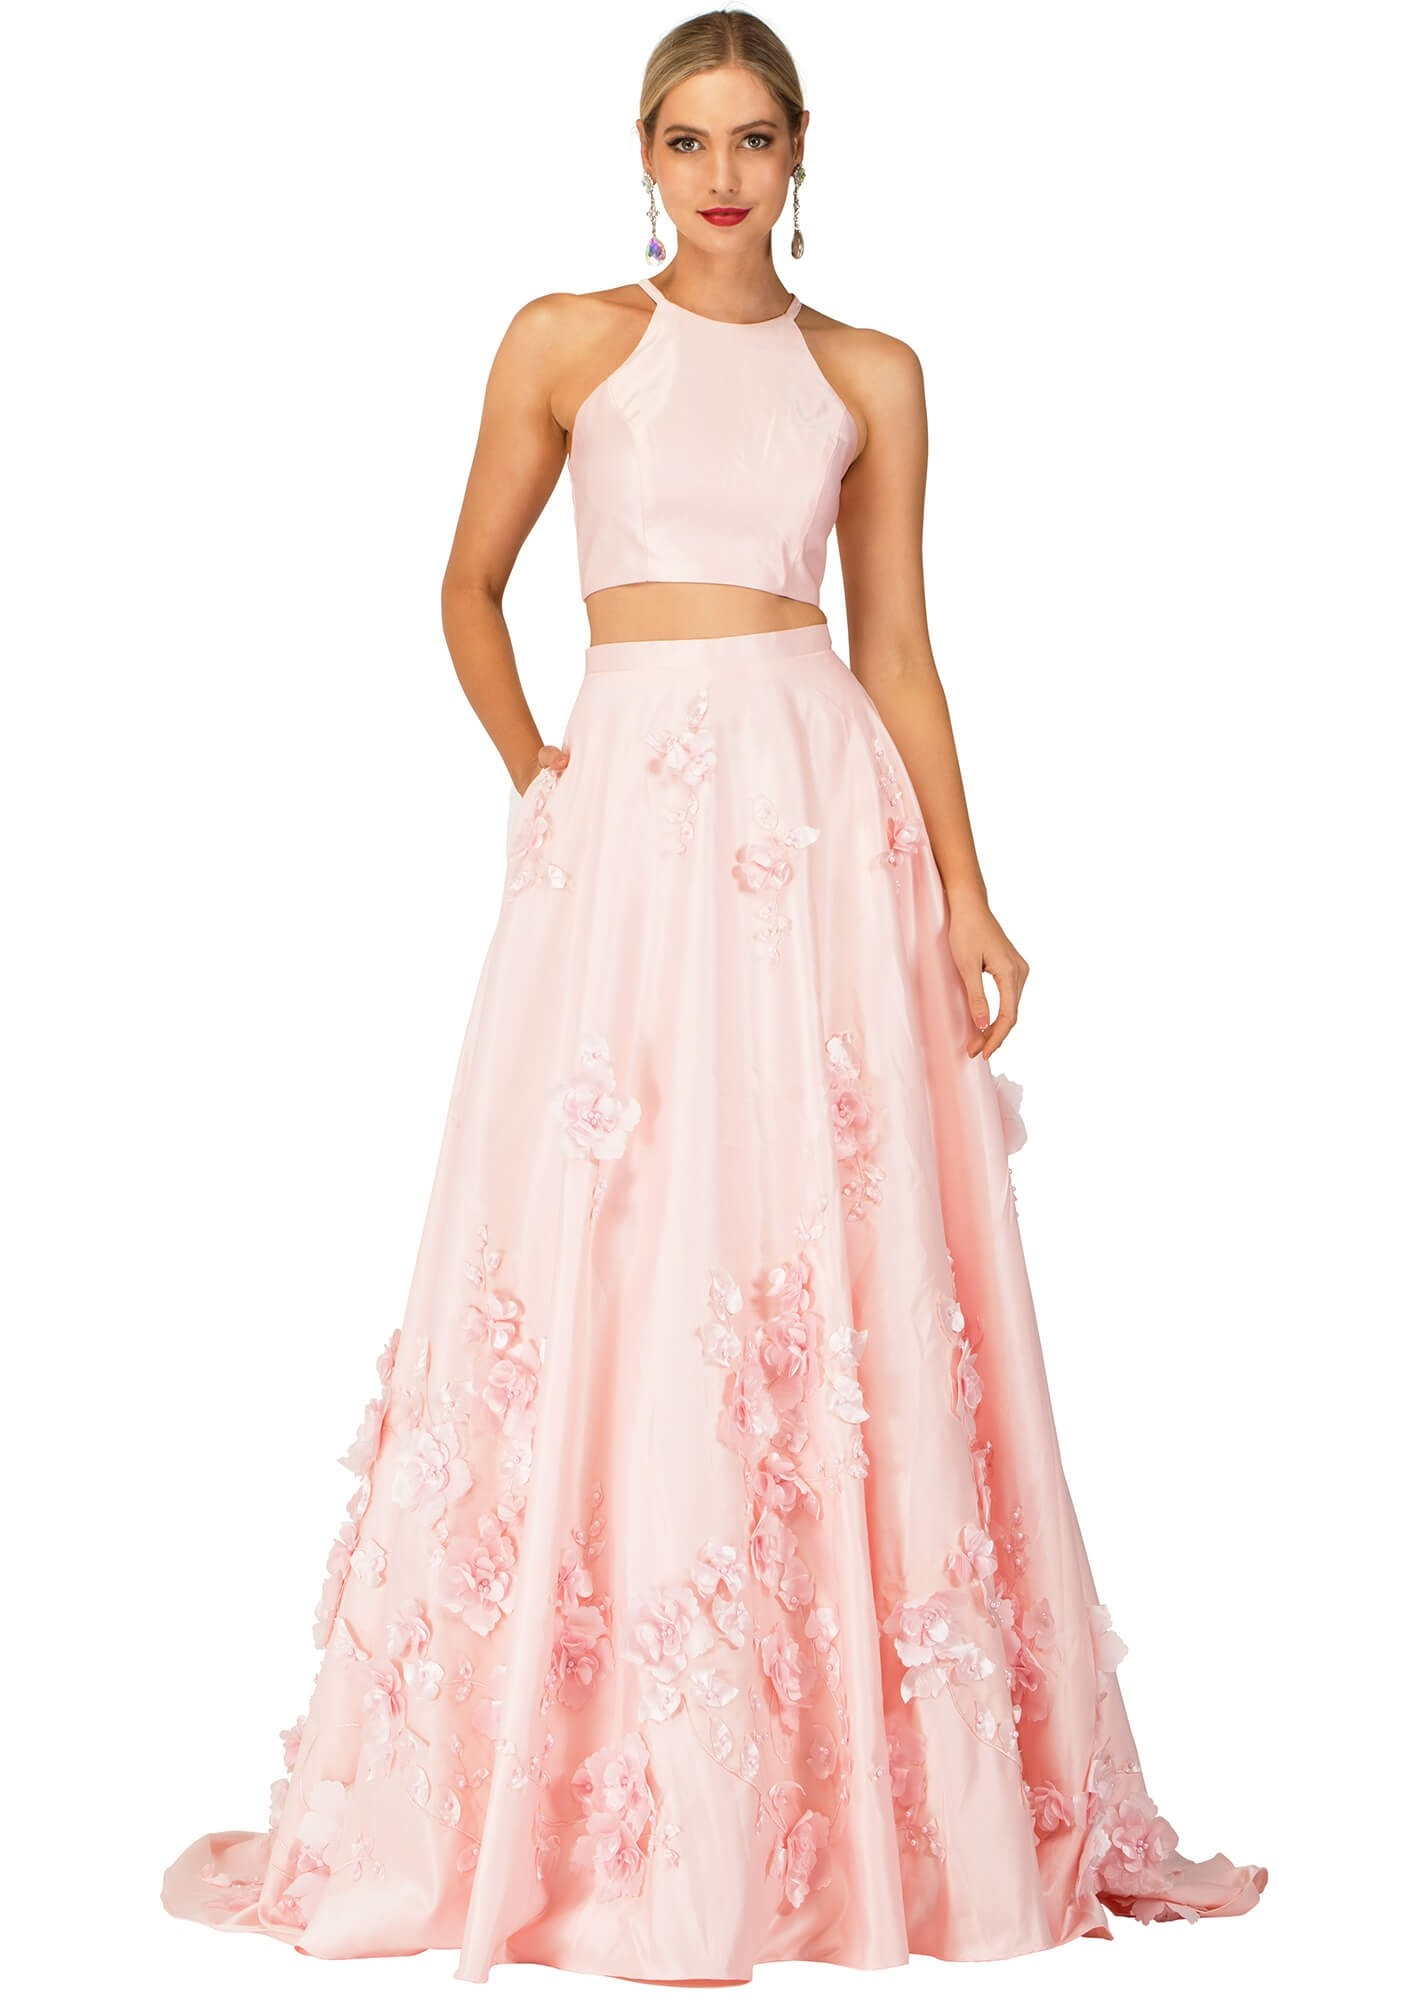 Cecilia Couture 2145 Two Piece Floral Adorned Ball Gown